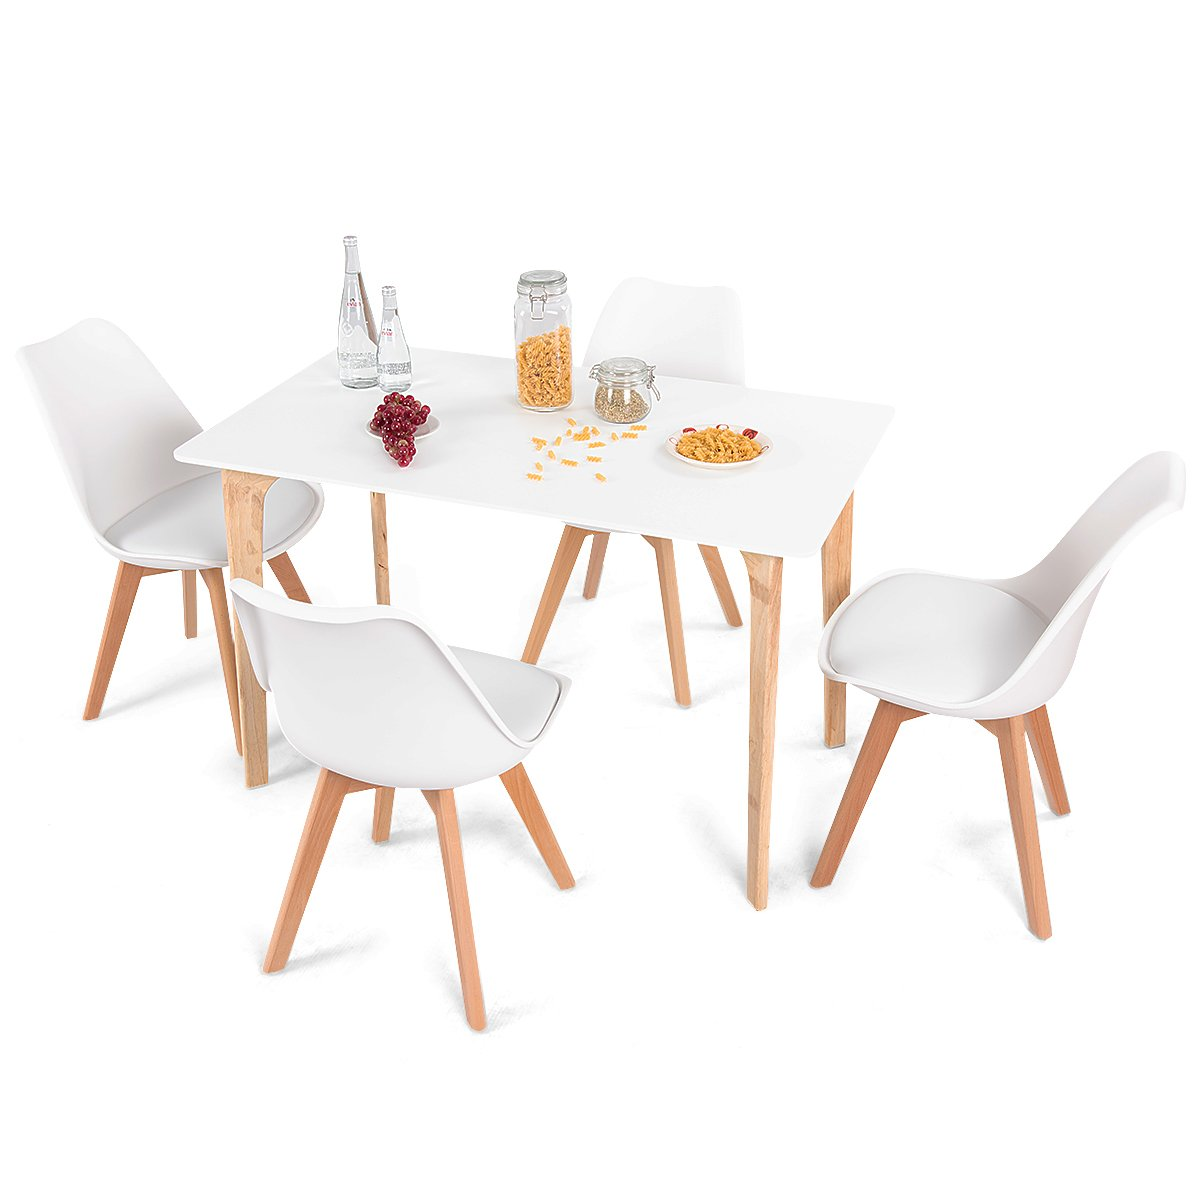 Giantex 5 Pieces Dining Table Set w/ 4 Chairs Home Dining Room Kitchen Waiting Room Modern Rectangular Table Mid-Century Dining Chairs with Padded Seat Wood Legs White by Giantex